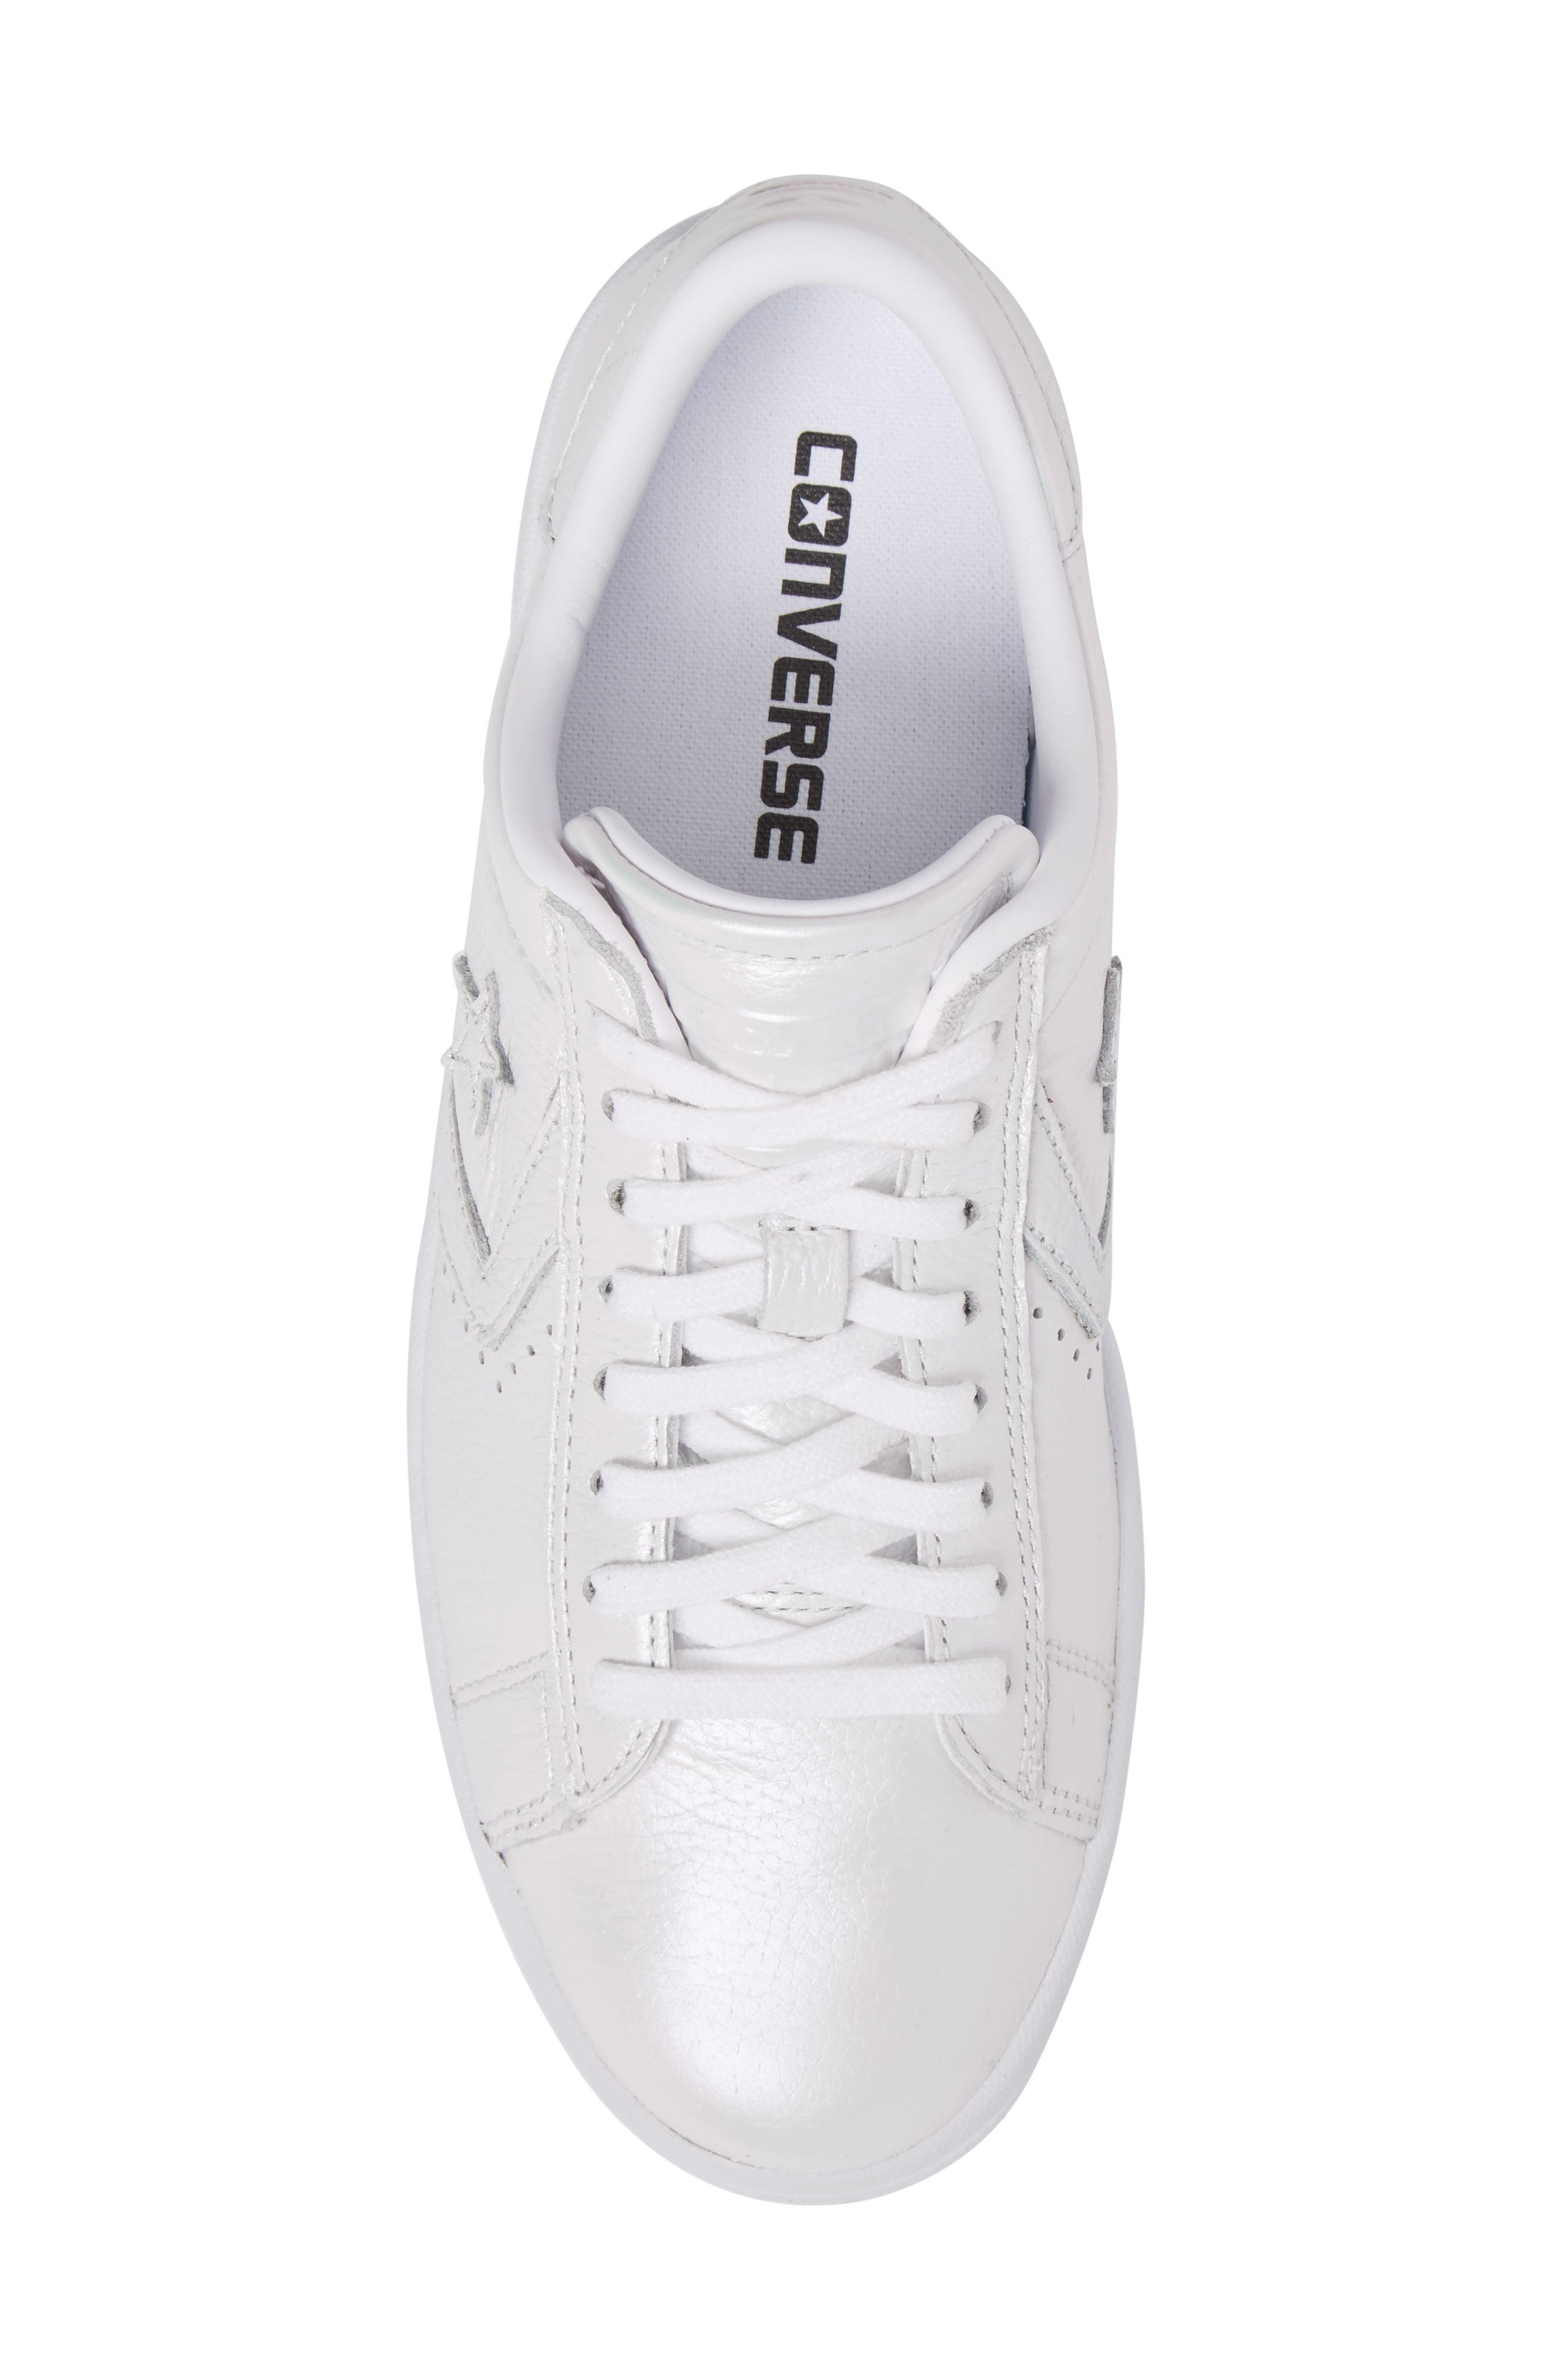 Pro Leather LP Sneaker,                             Alternate thumbnail 5, color,                             White Leather